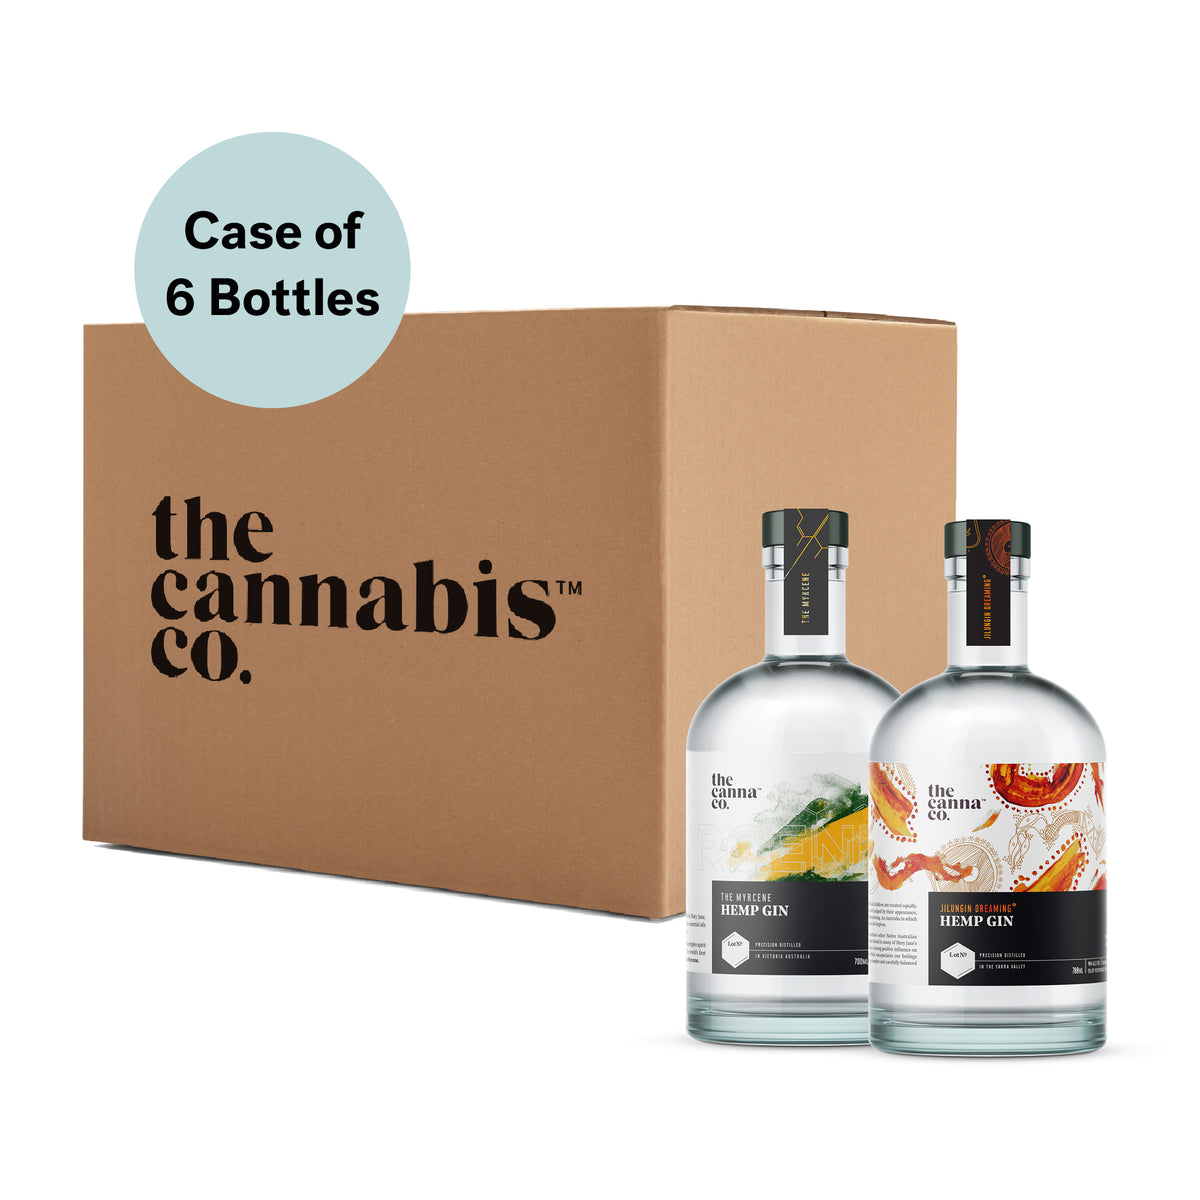 Gin Sample Box – 3 x Jilungin + 3 x Myrcene – Case of 6 x 700ml bottles